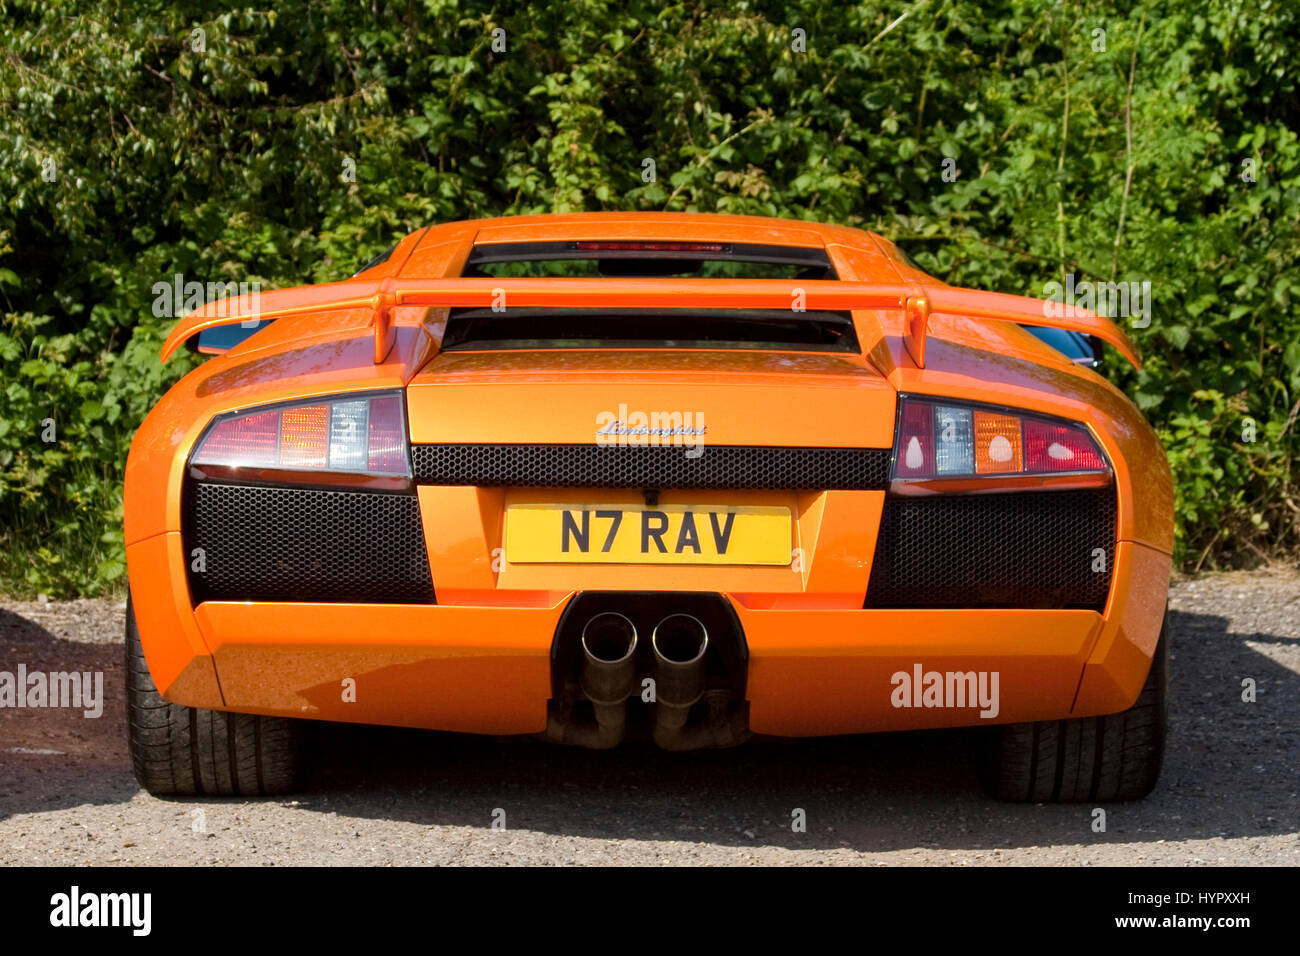 Loud Exhaust Stock Photos & Loud Exhaust Stock Images - Alamy